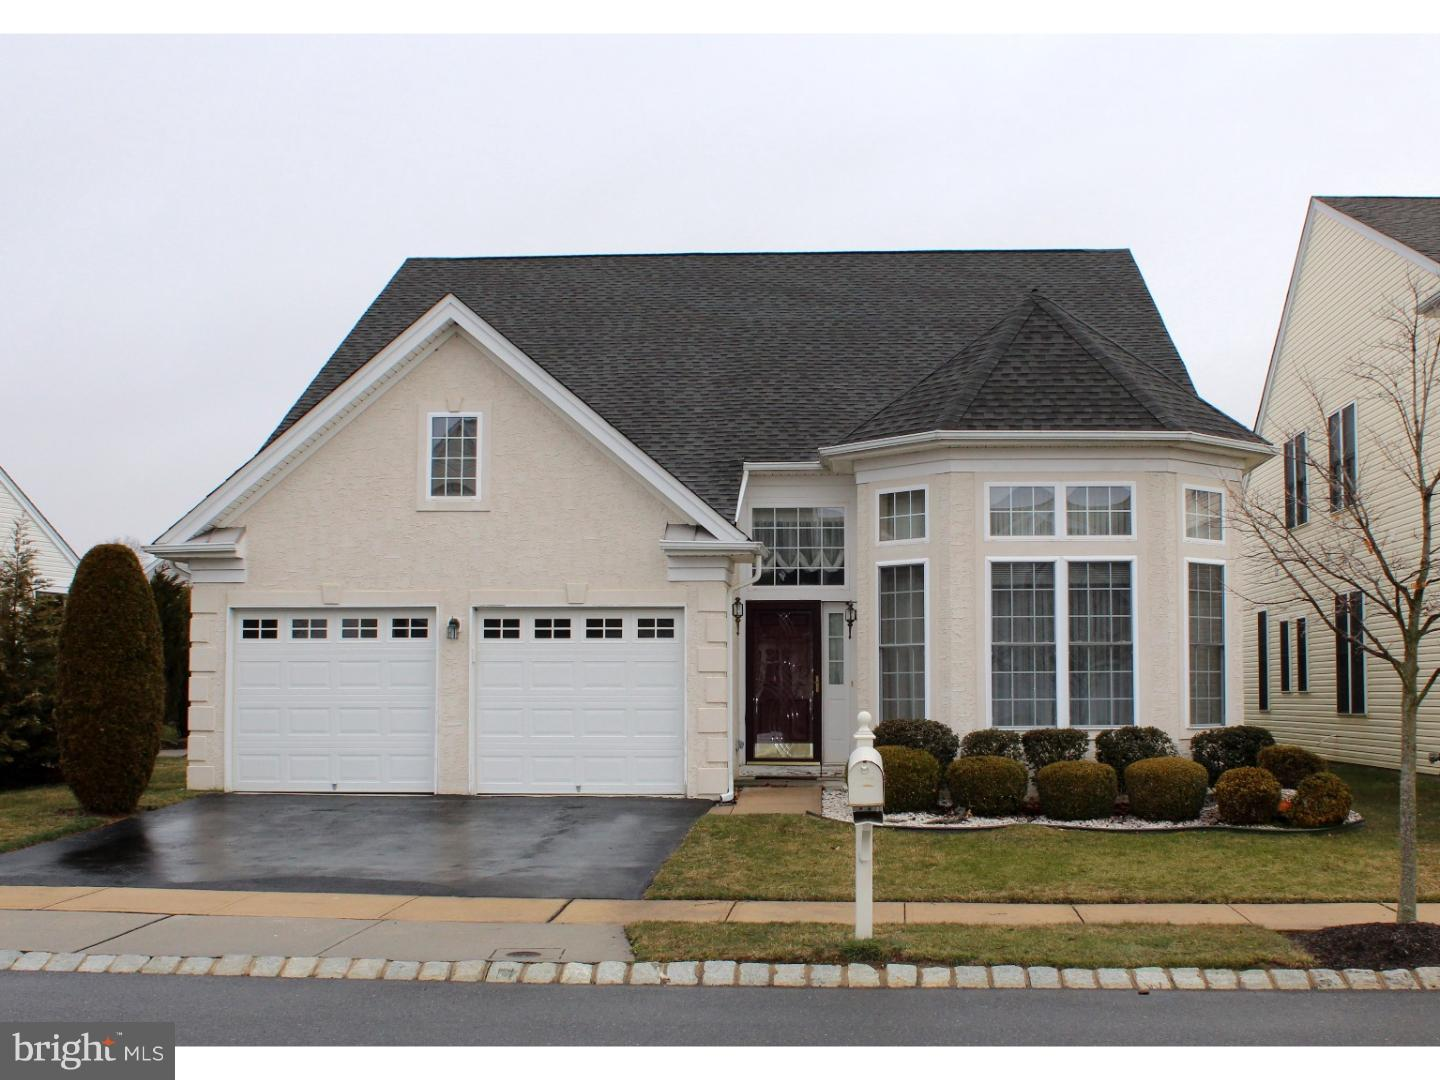 Single Family Home for Sale at 51 EINSTEIN WAY East Windsor, New Jersey 08512 United StatesMunicipality: East Windsor Township